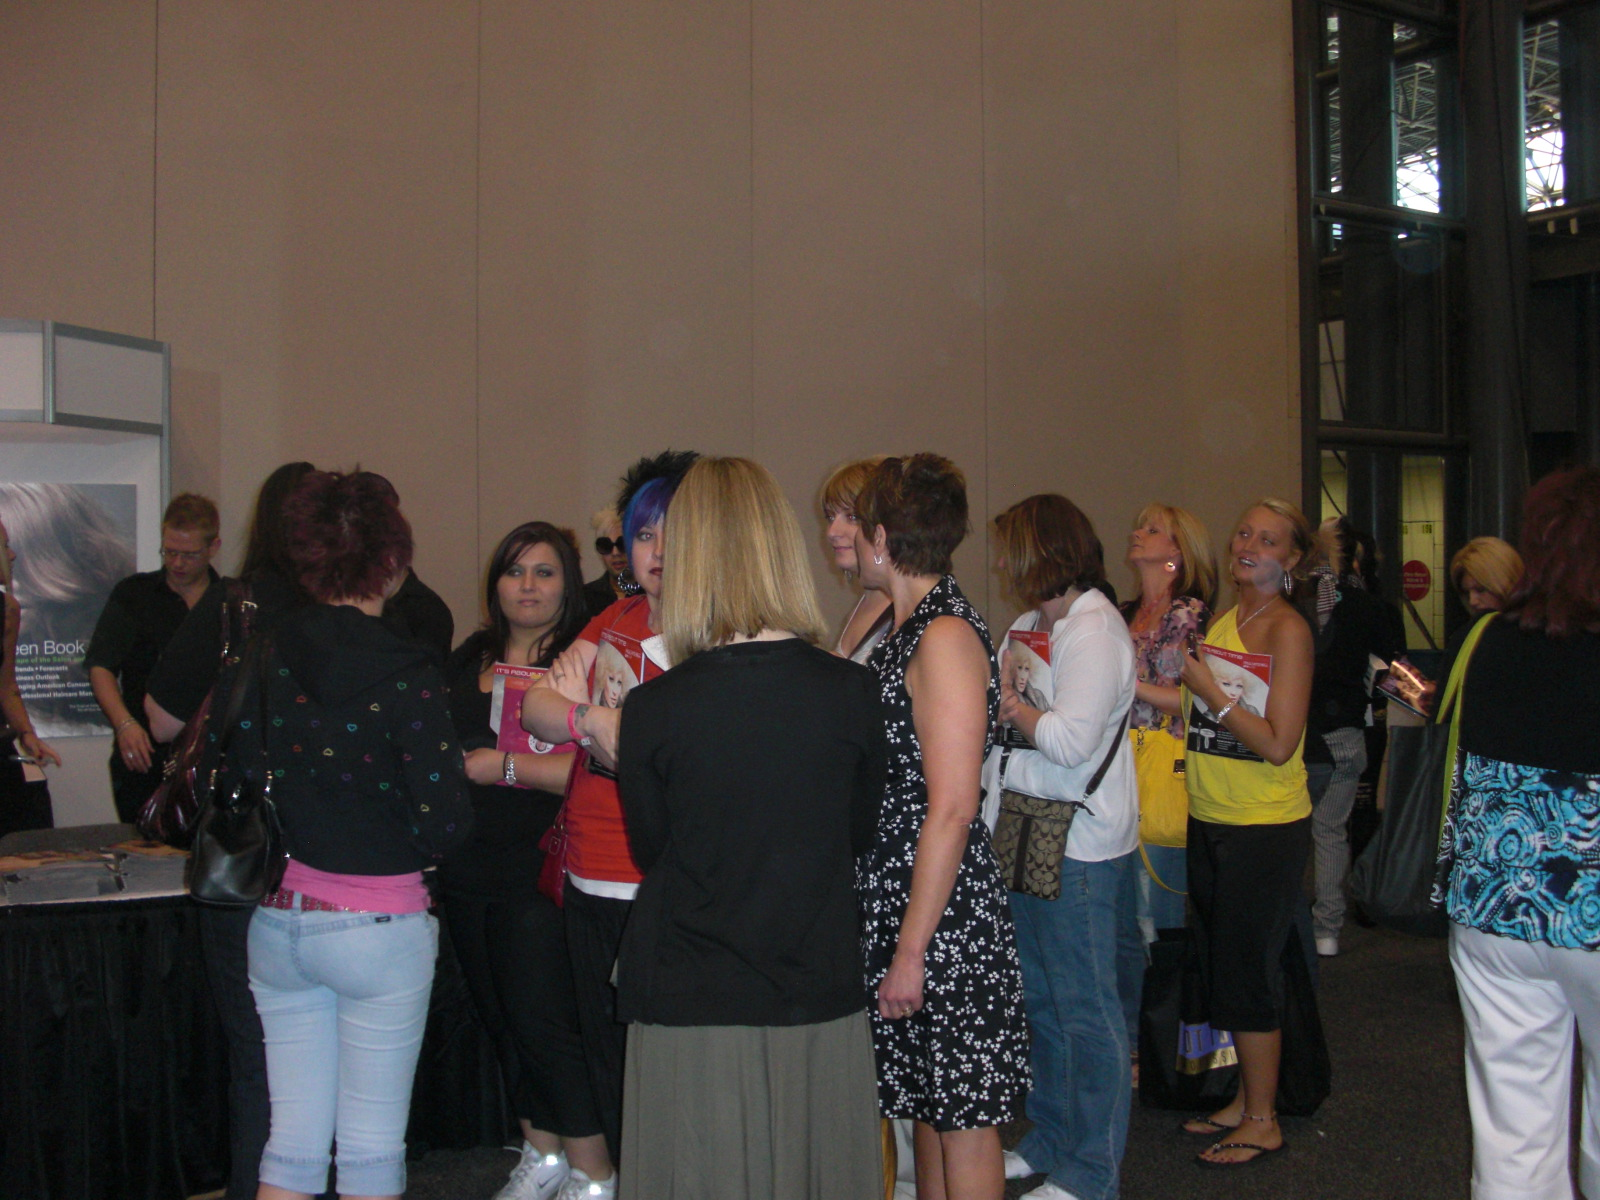 IBS attendees line up at the American Salon booth for autographs from the Shear Genius finalists